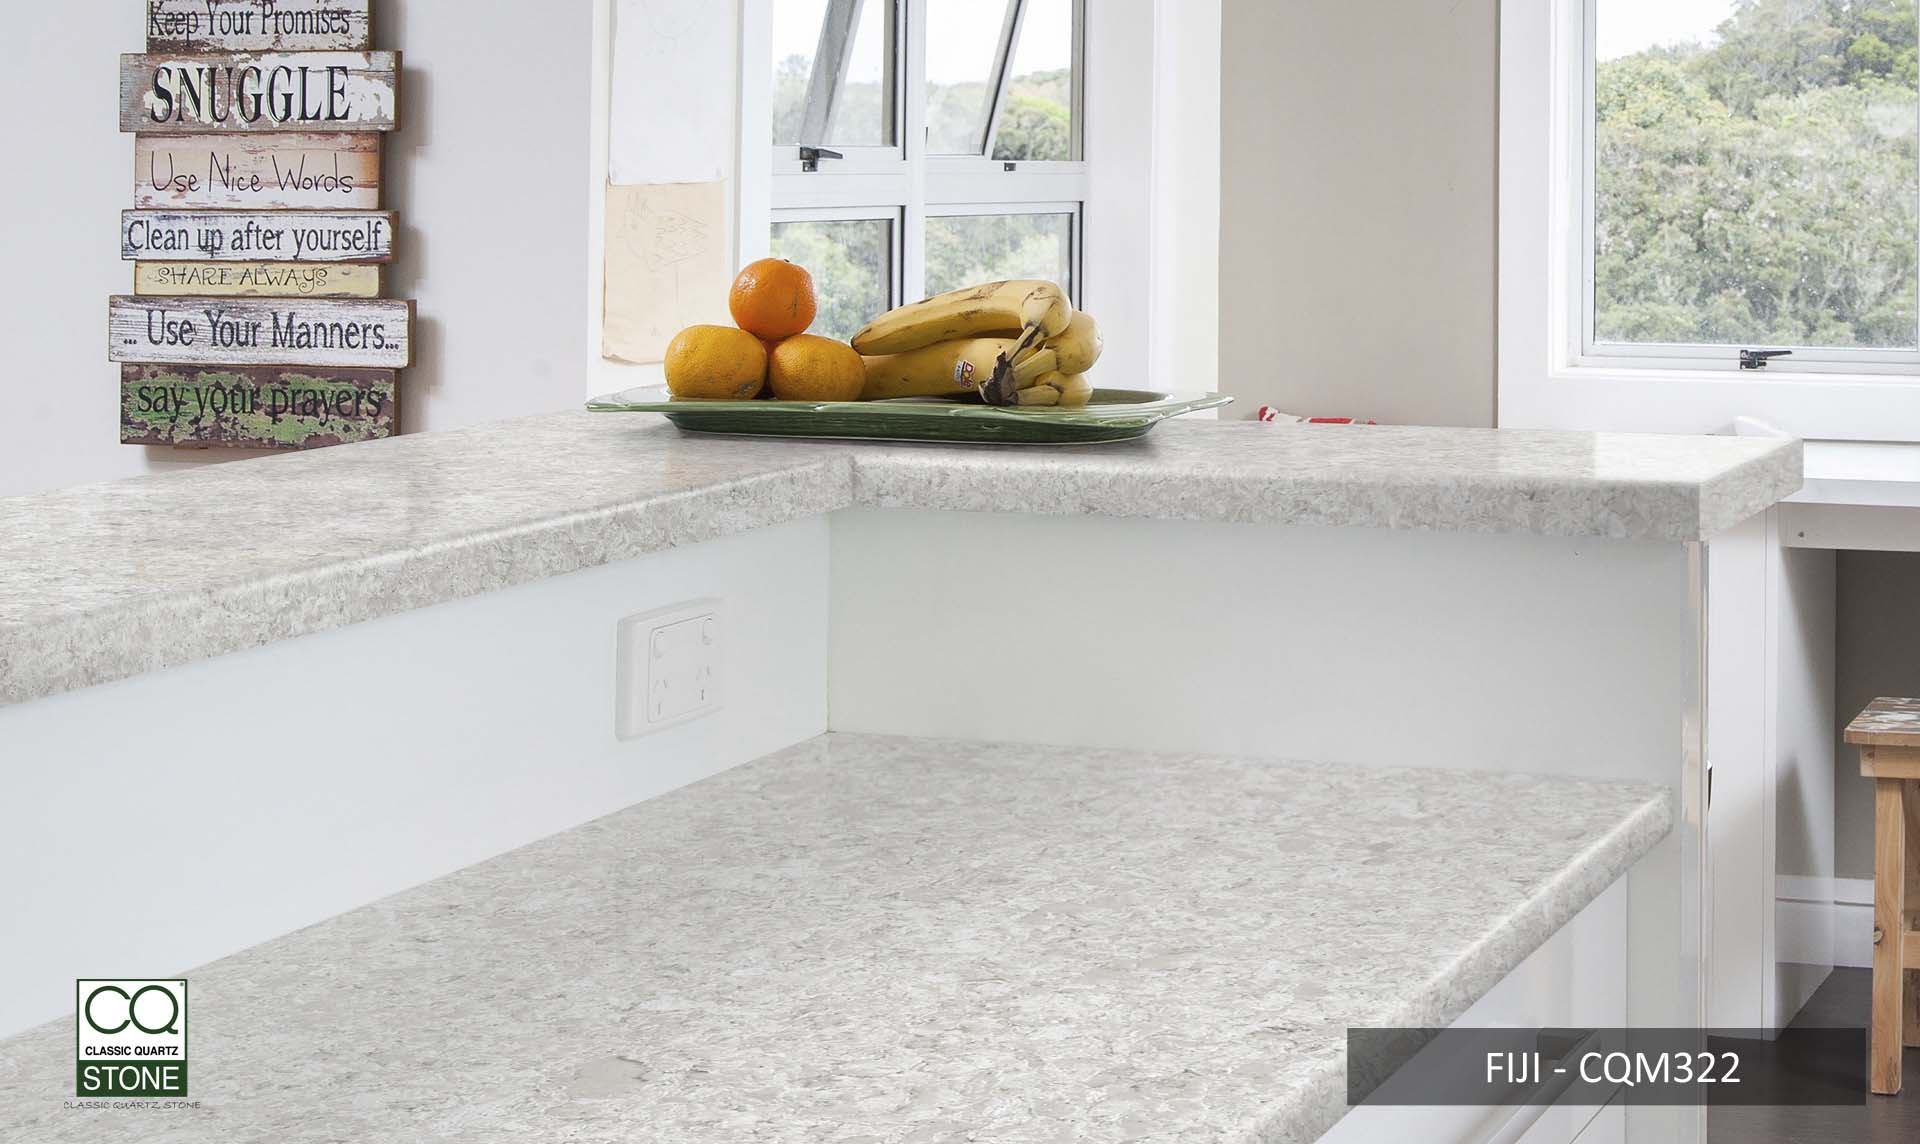 Classic Quartz worktops special offer CQM322-FIJI-KITCHEN-SURFACE